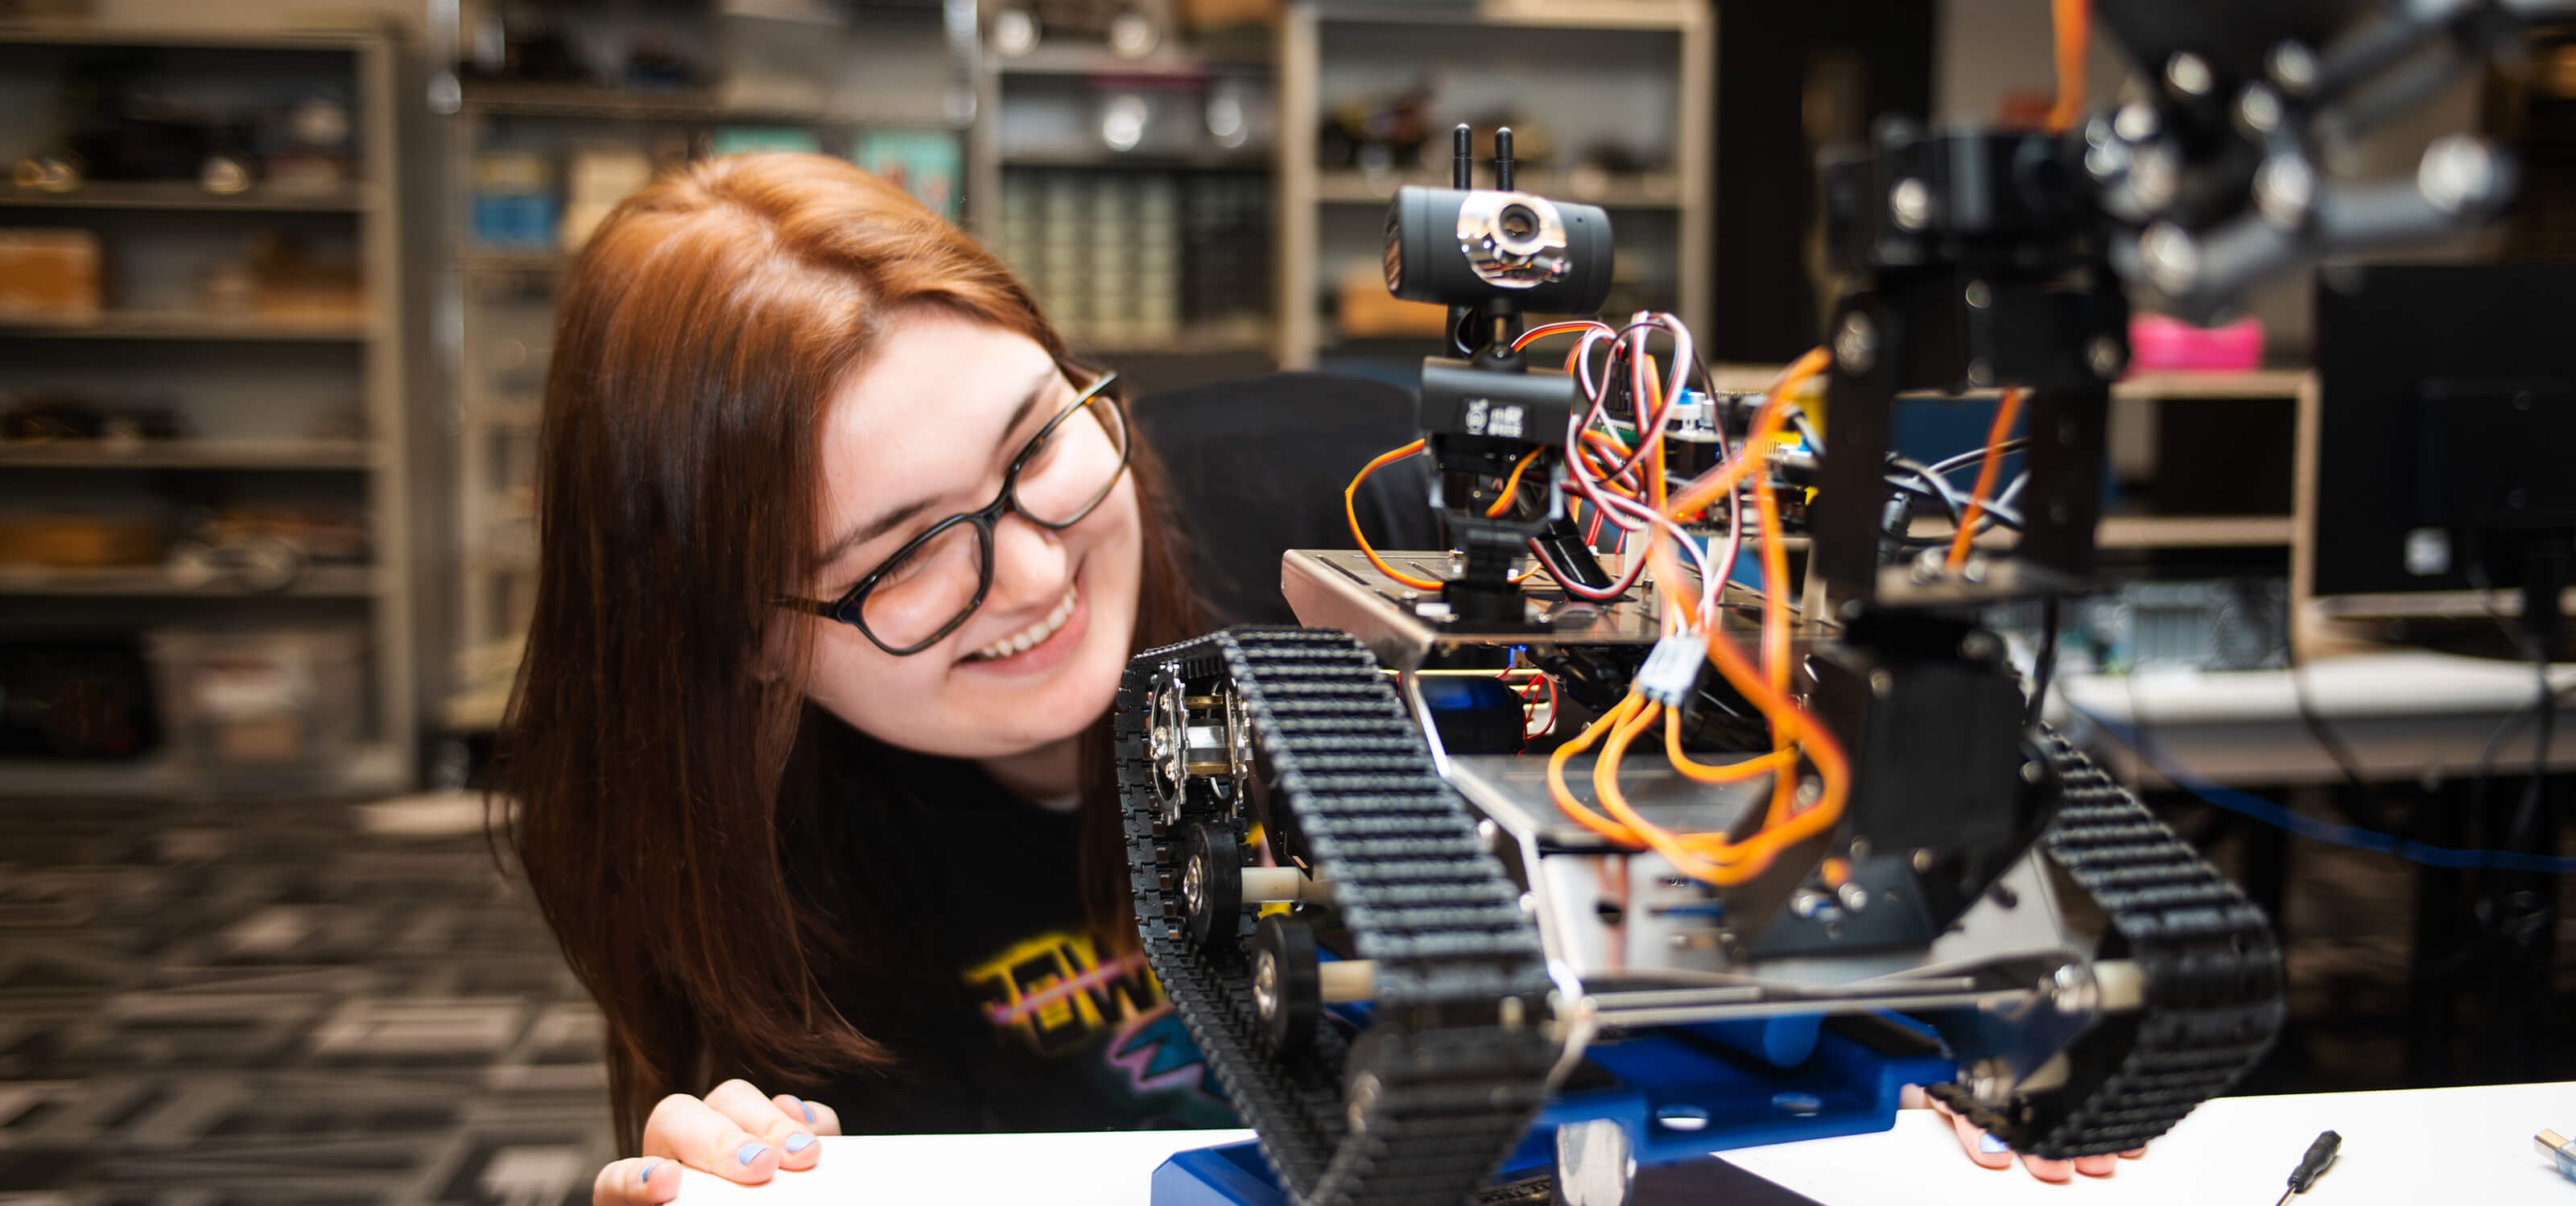 A DigiPen student smiles as she examines her robot